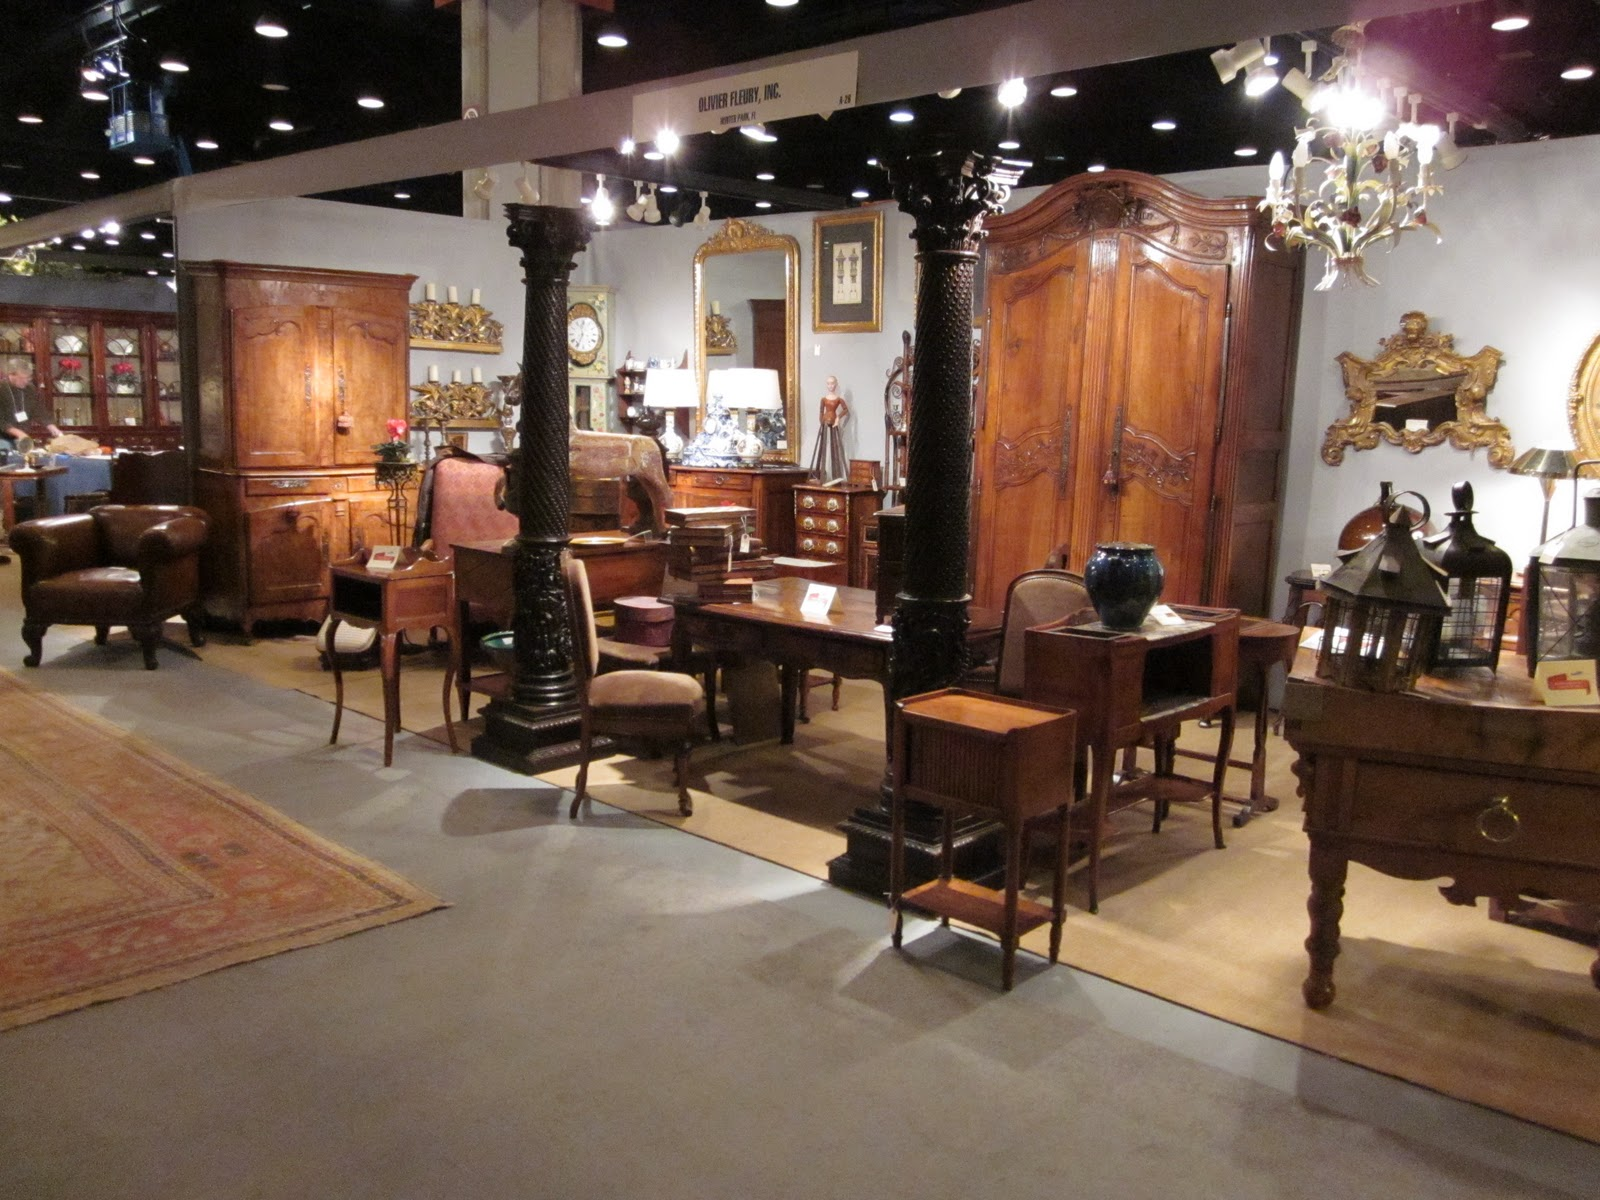 French country antiques antique and garden show in Nashville home and garden show